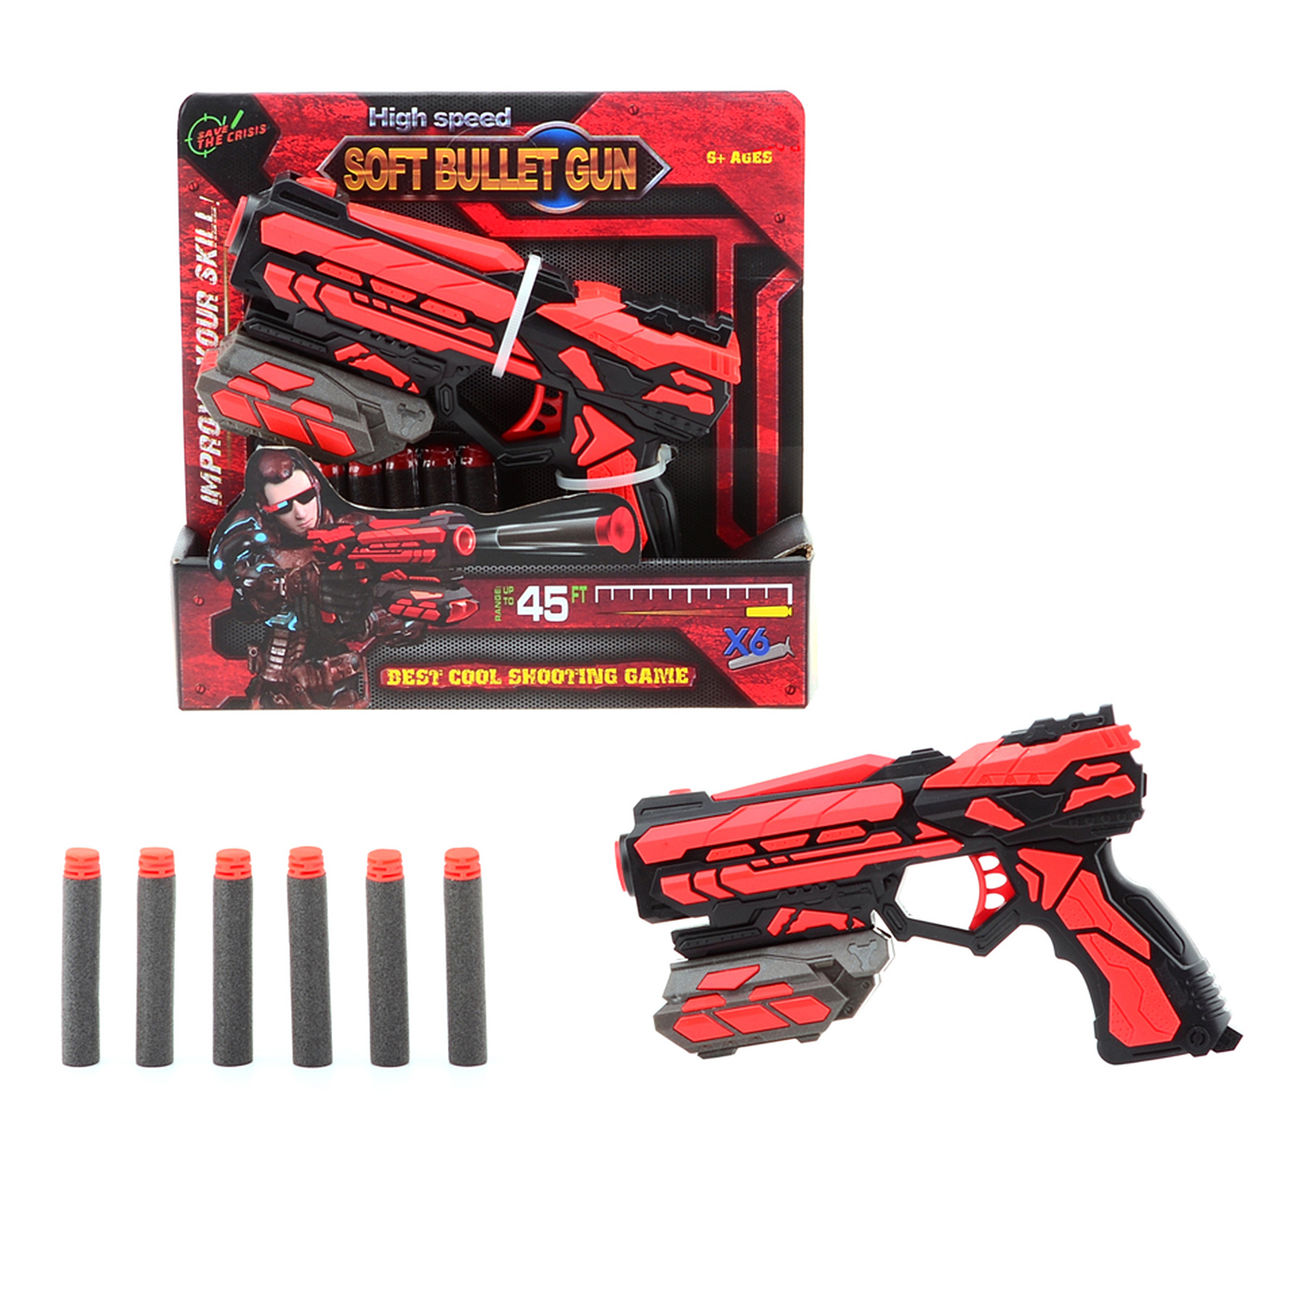 Johntoy Serve & Protect Shooter Starter 18 cm inkl. 6 Pfeile 0